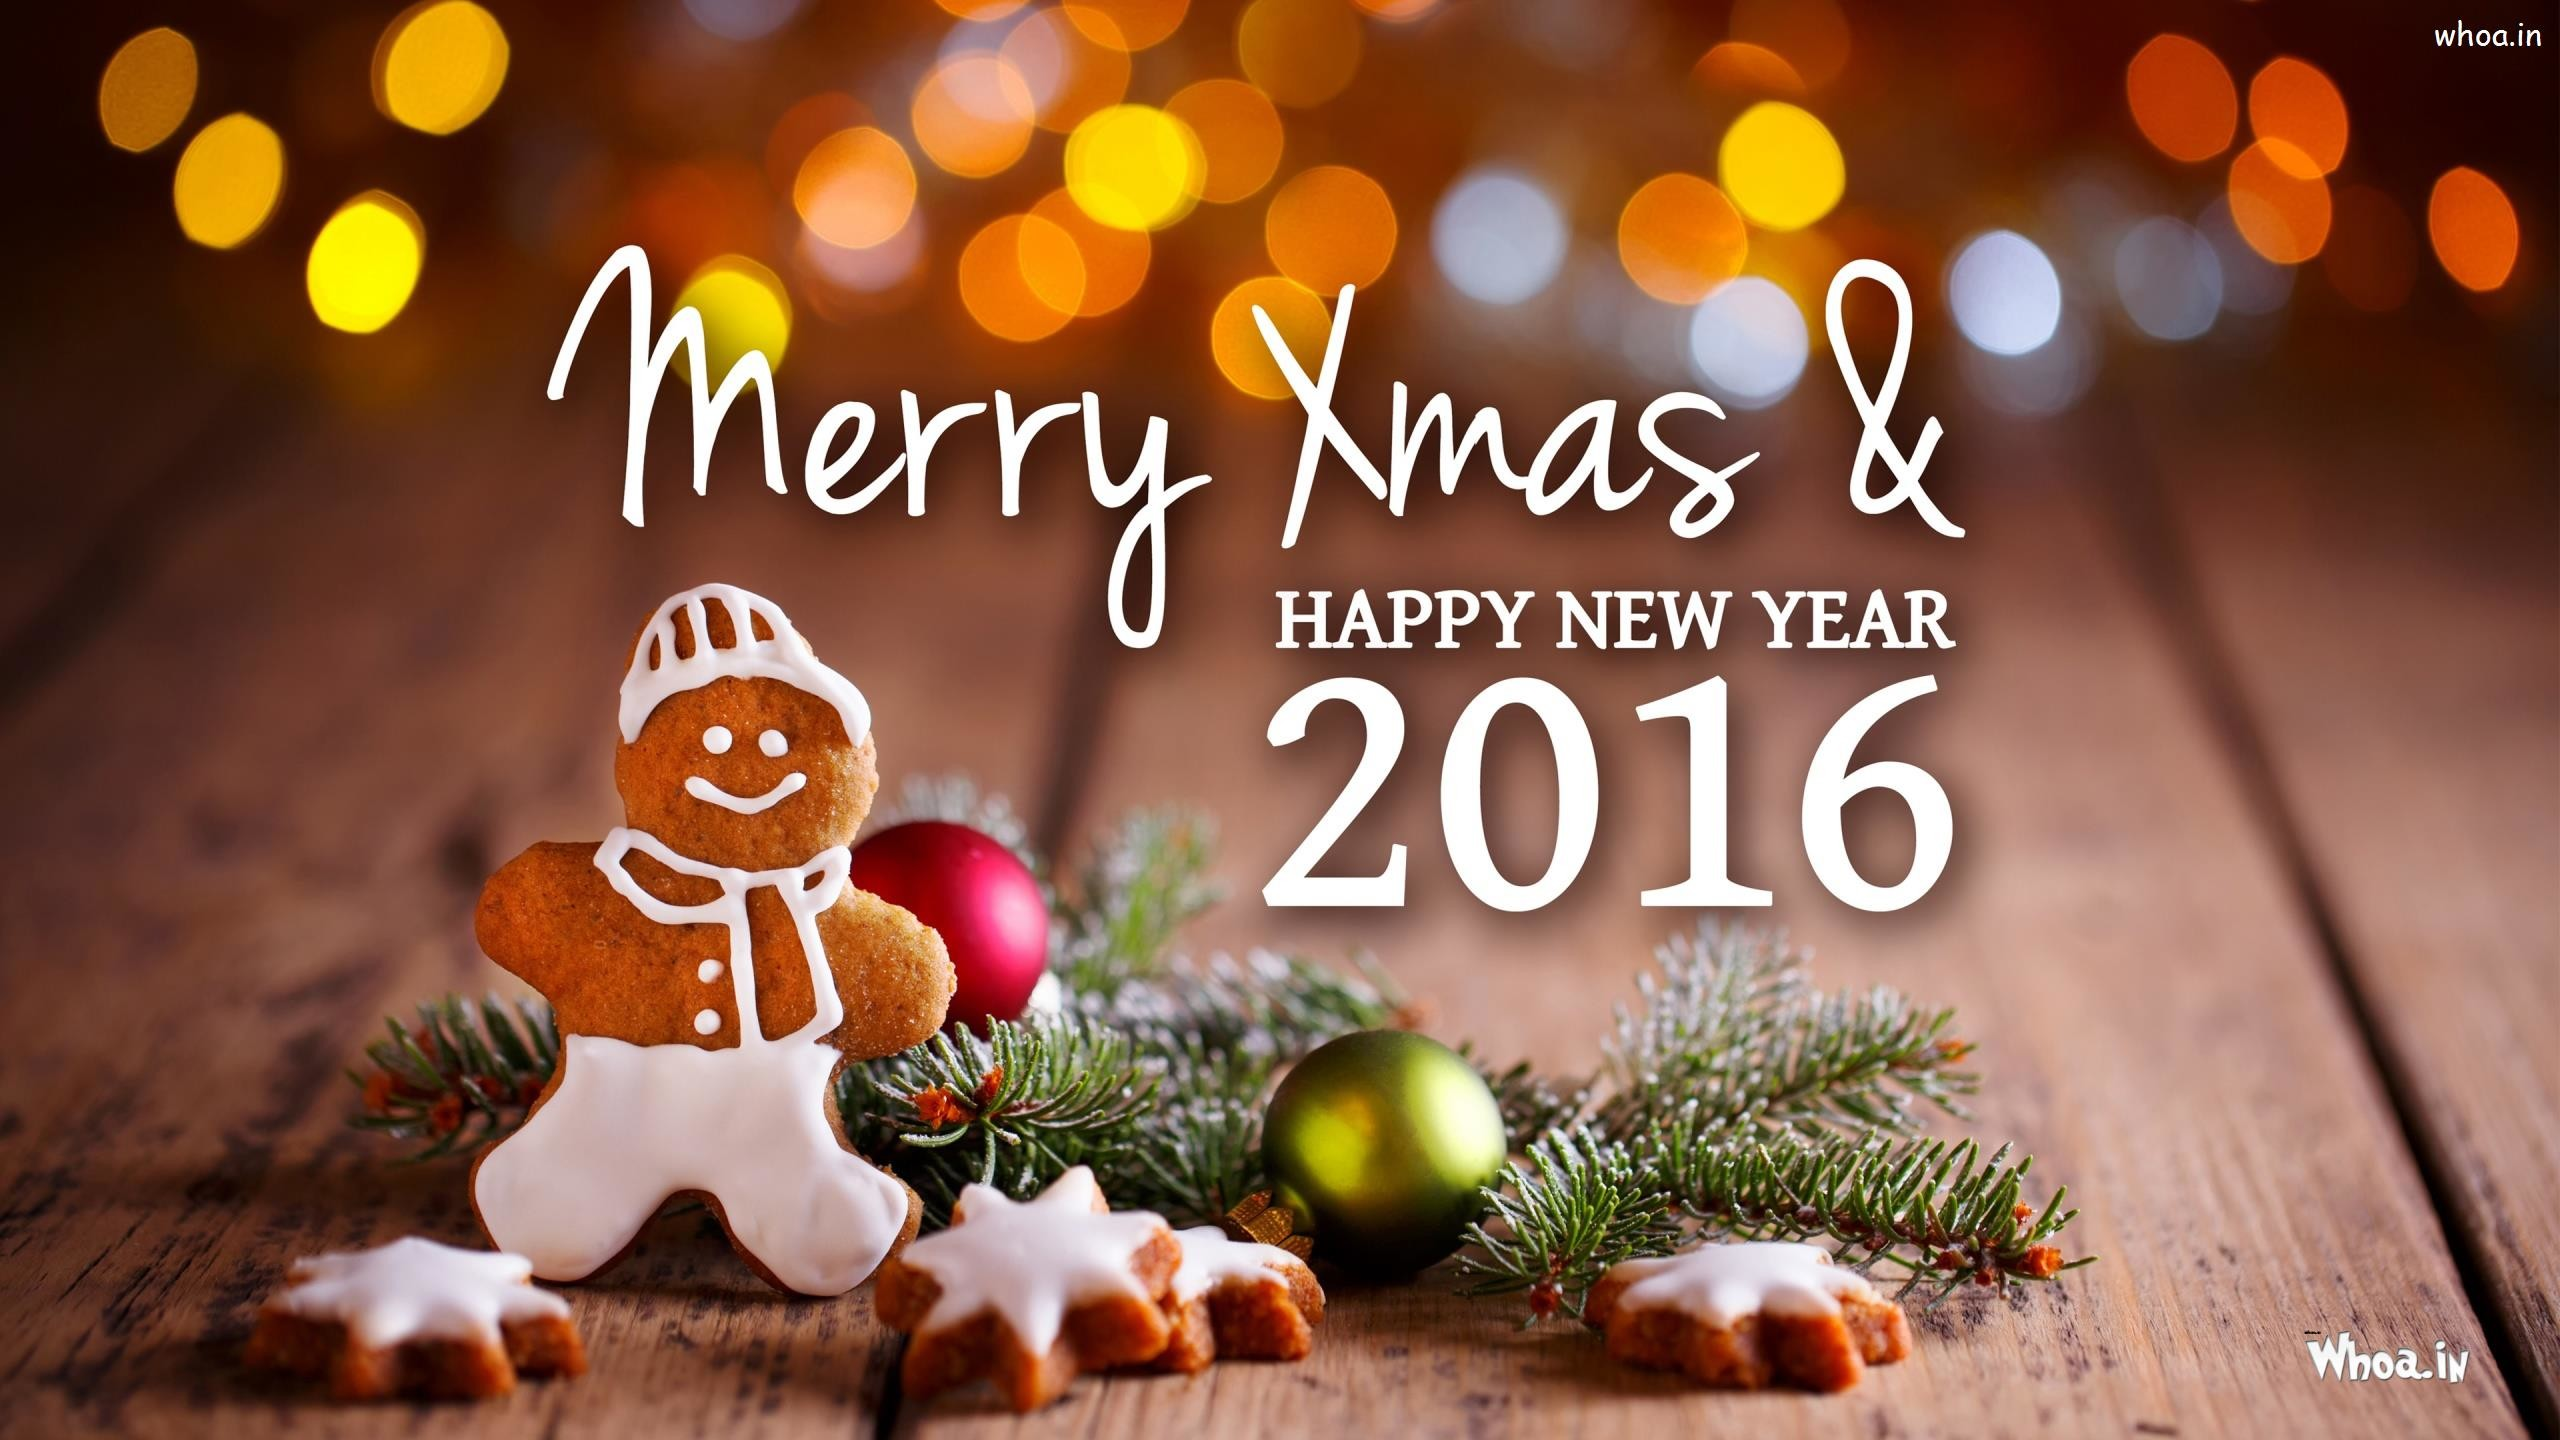 … 2016 Happy New Year with Merry Xmas HD Wallpaper …